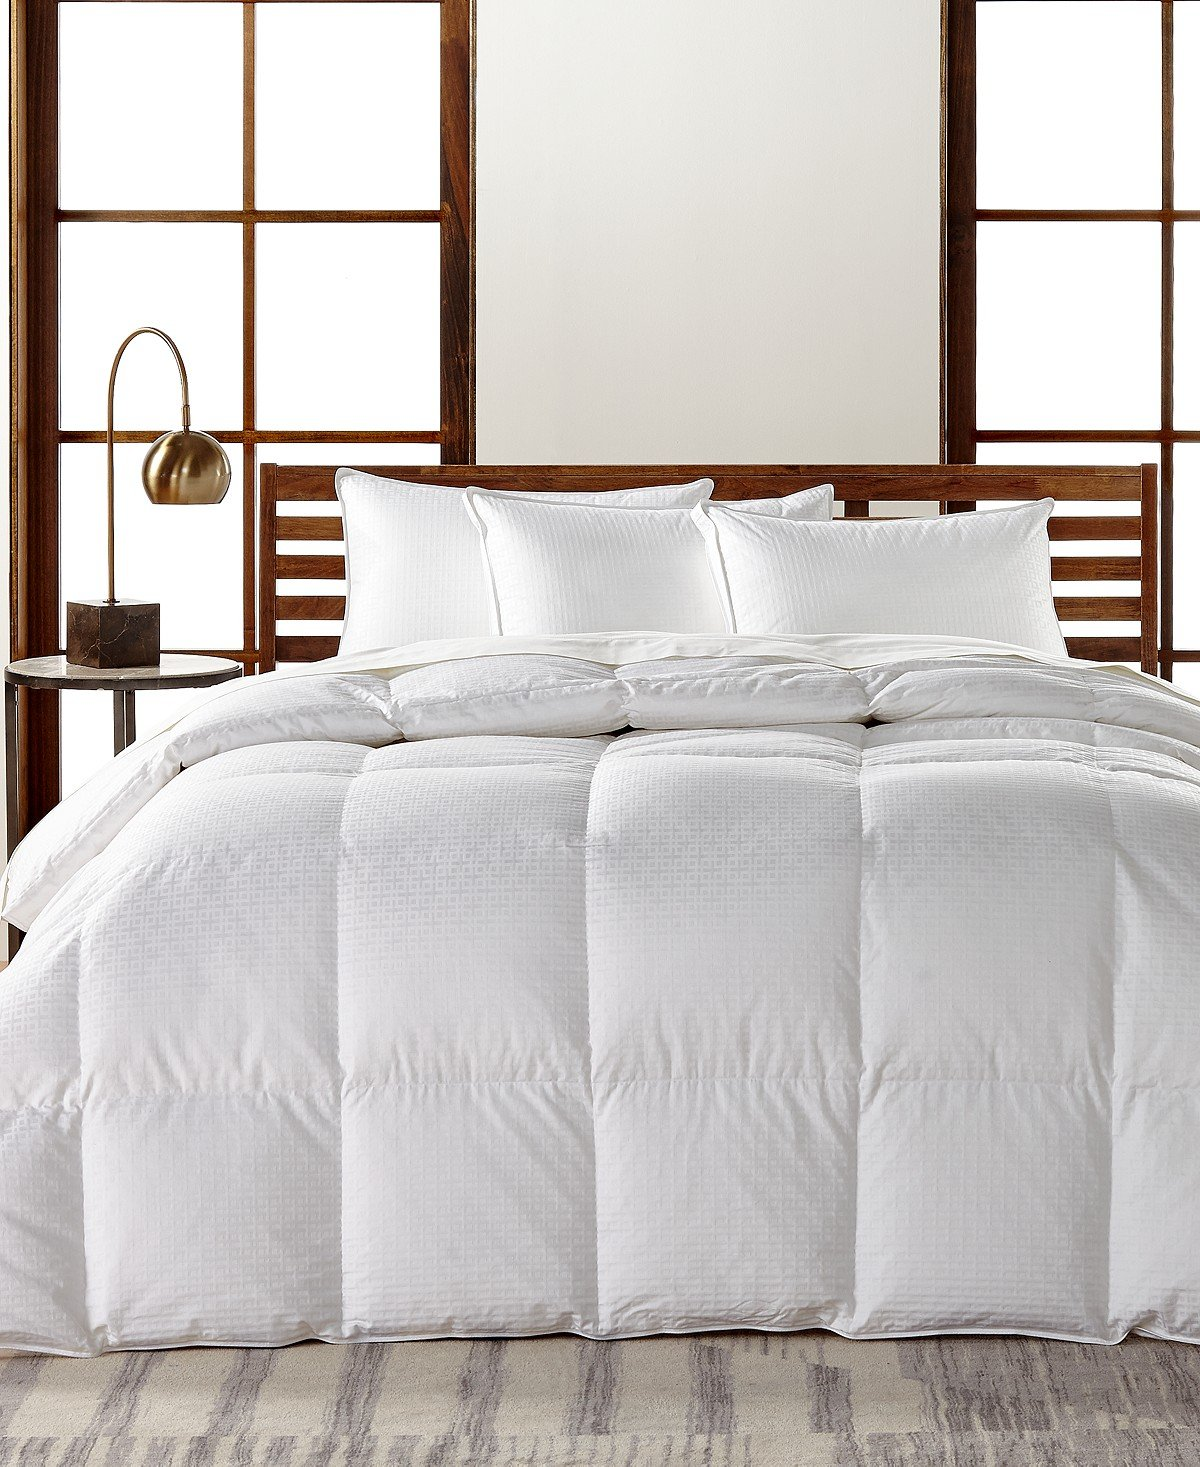 Hotel Collection European White Goose Down Light Weight Full/Queen Comforter